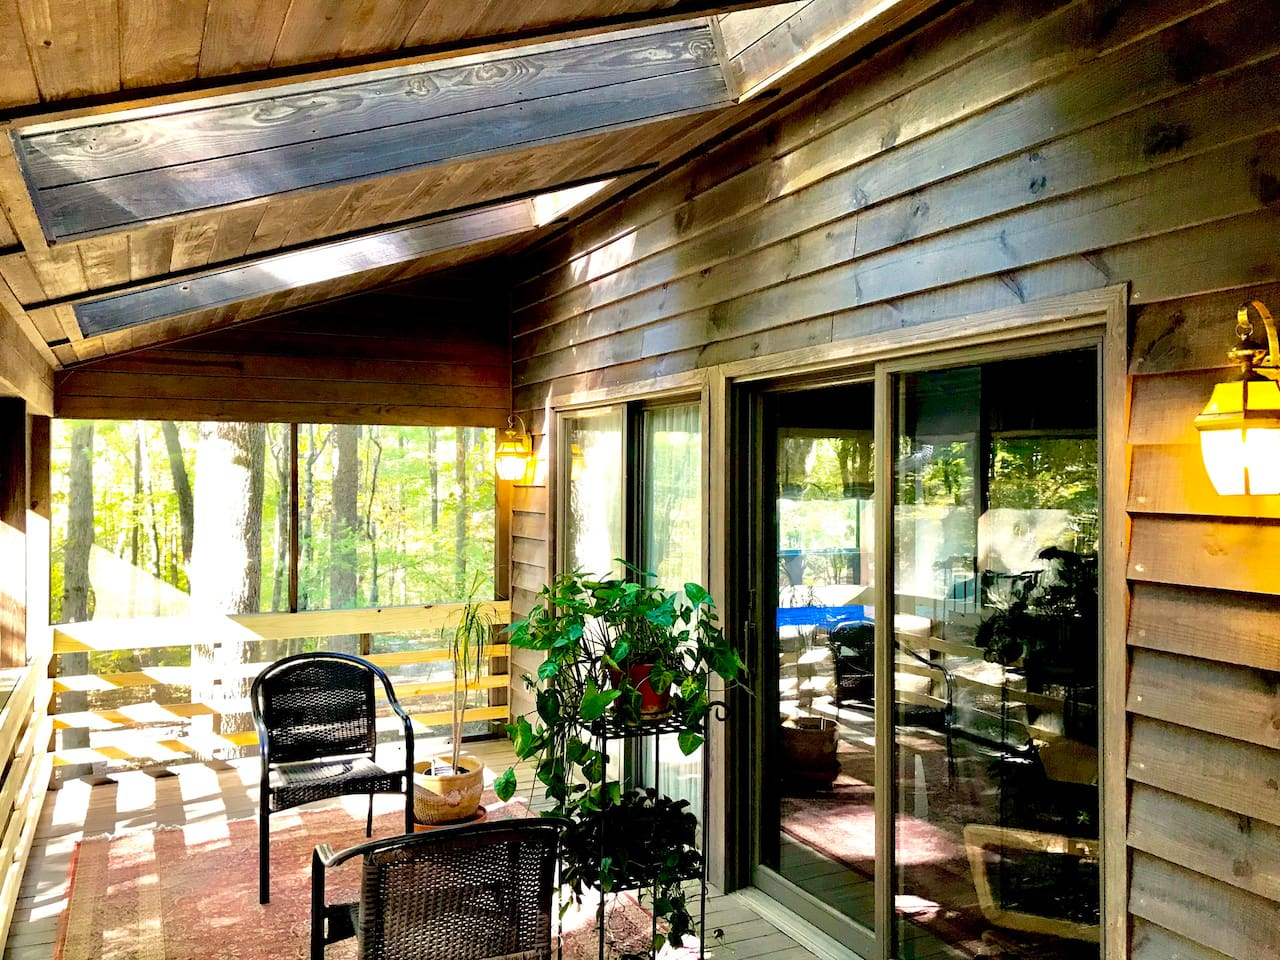 Wraparound porch on south and east sides with large skylights to let in the sunlight.